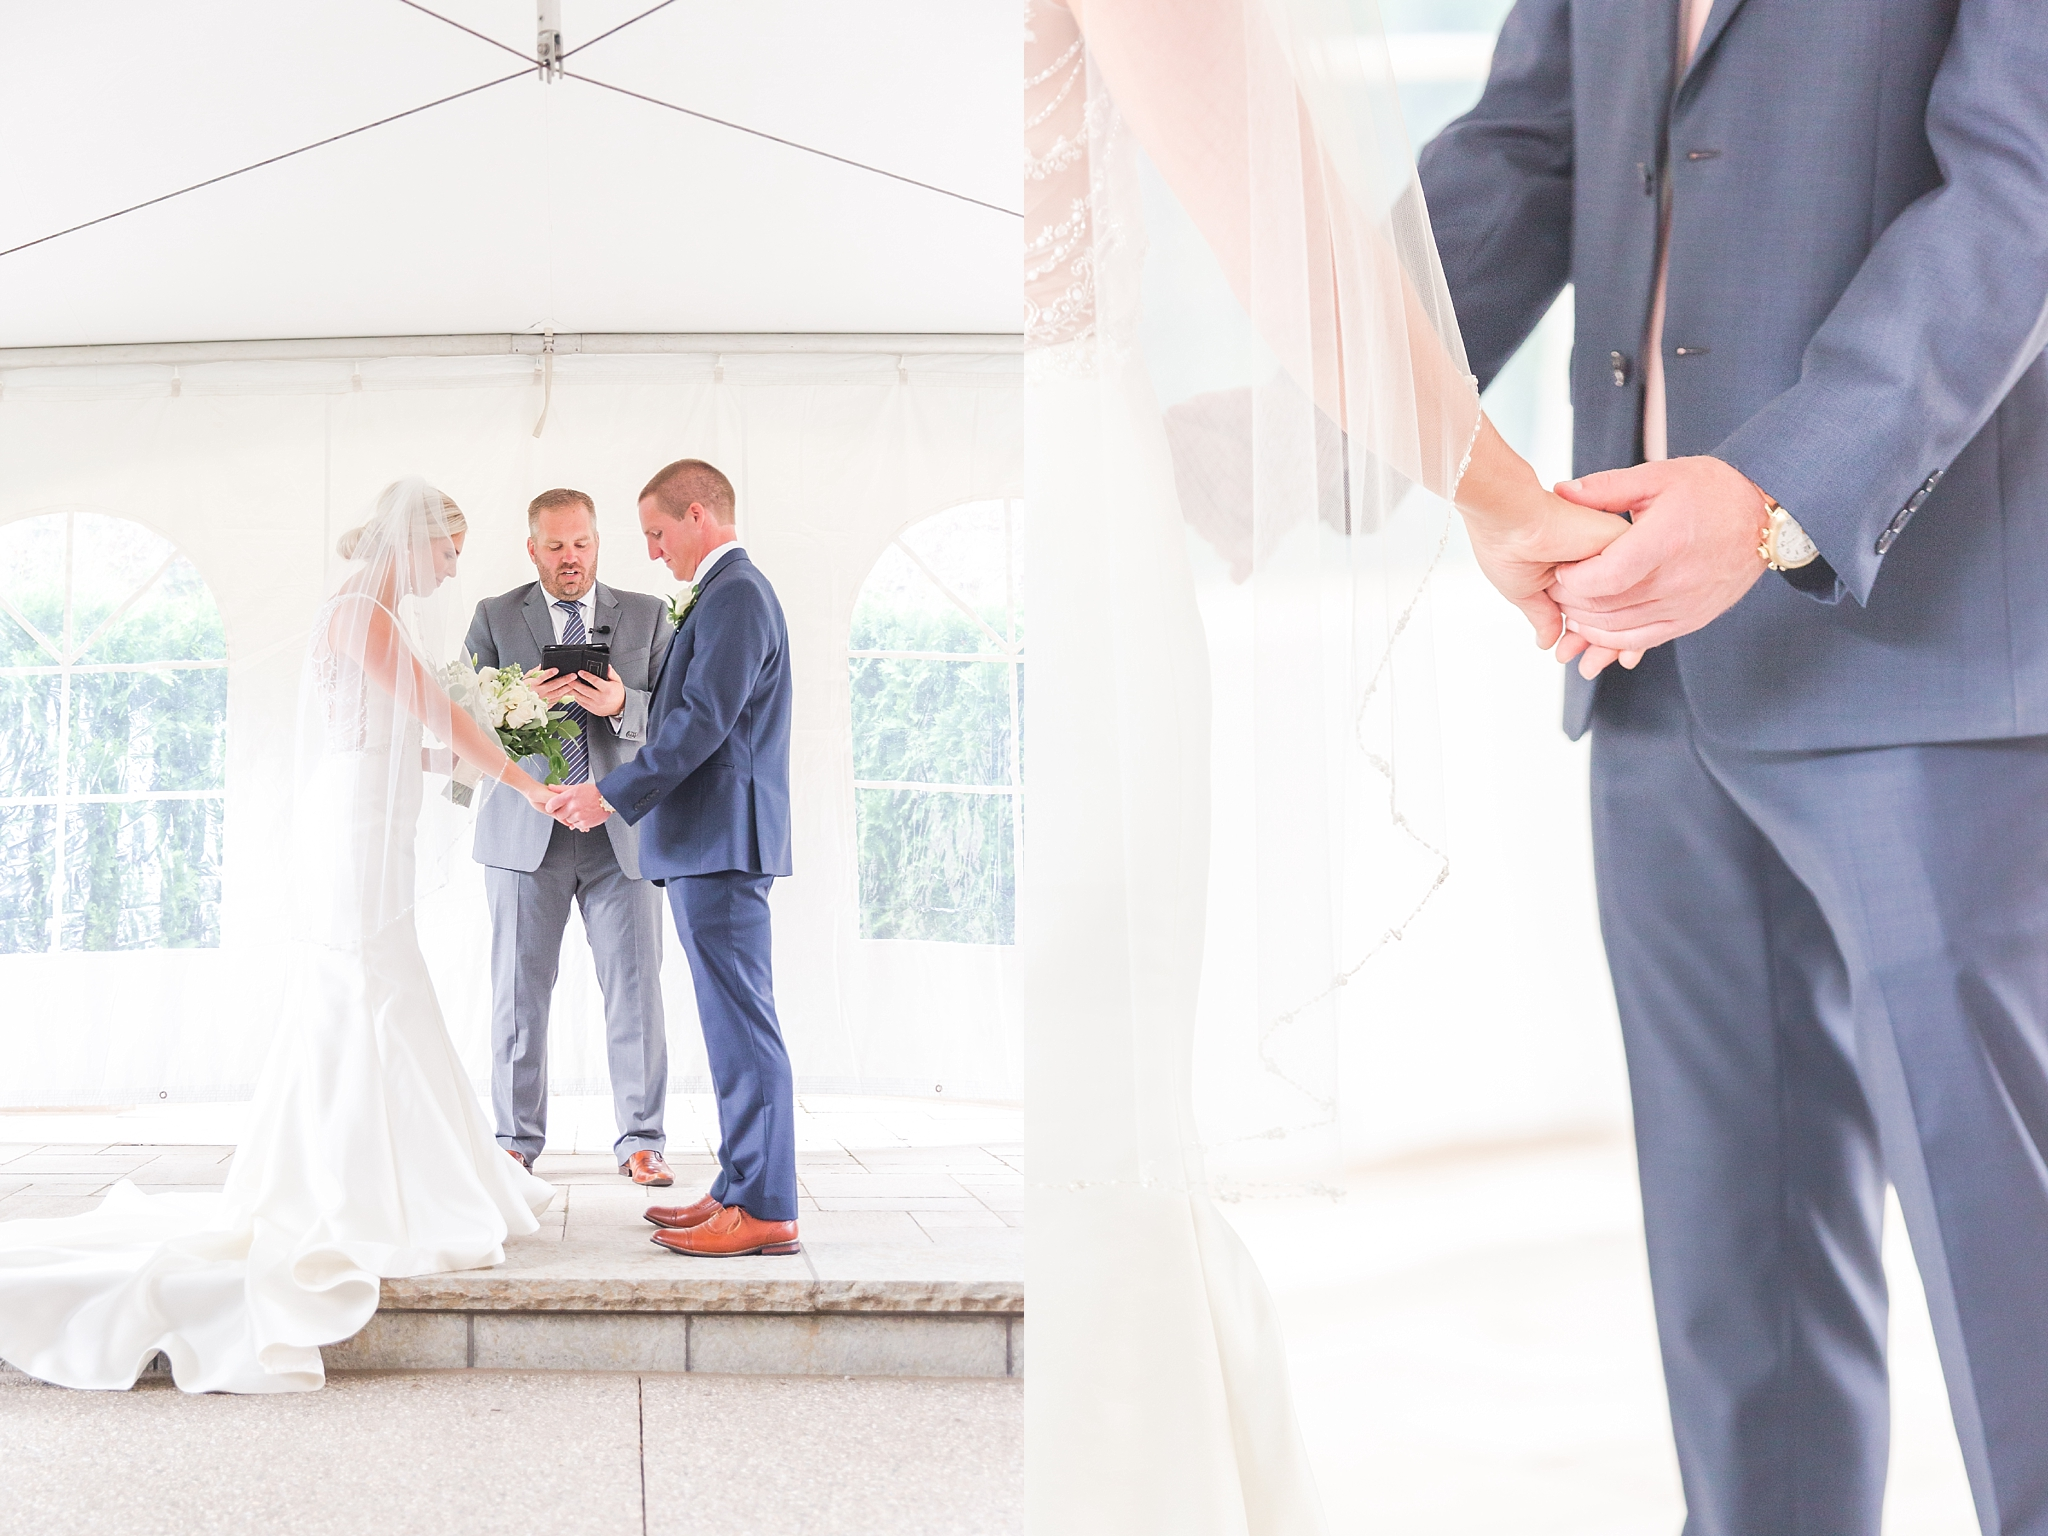 casually-chic-modern-wedding-photos-at-the-chapman-house-in-rochester-michigan-by-courtney-carolyn-photography_0035.jpg